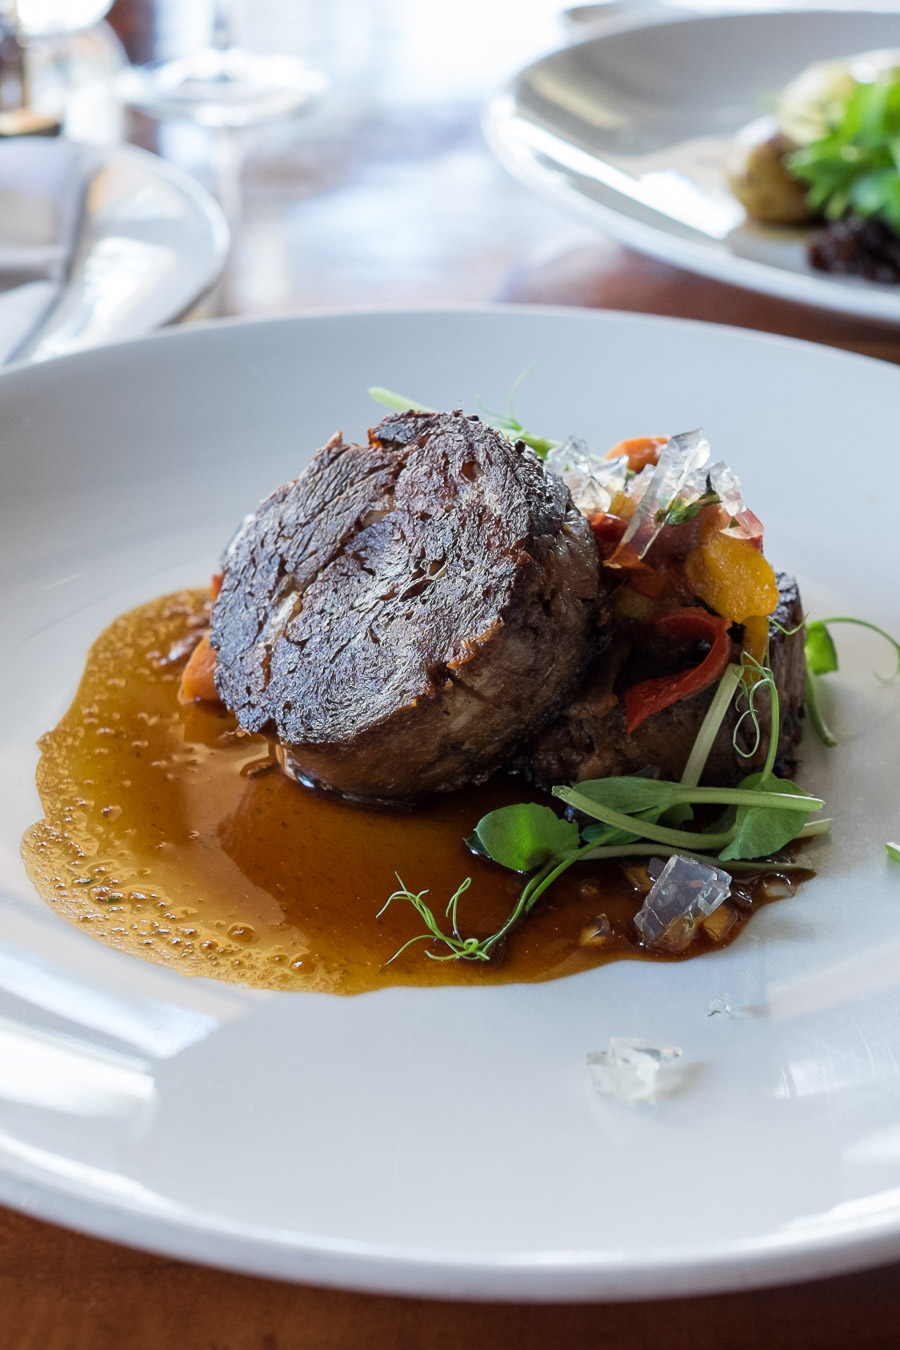 Avon Valley lamb (AU$44) - braised shoulder with eggplant caponata and river mint jelly.